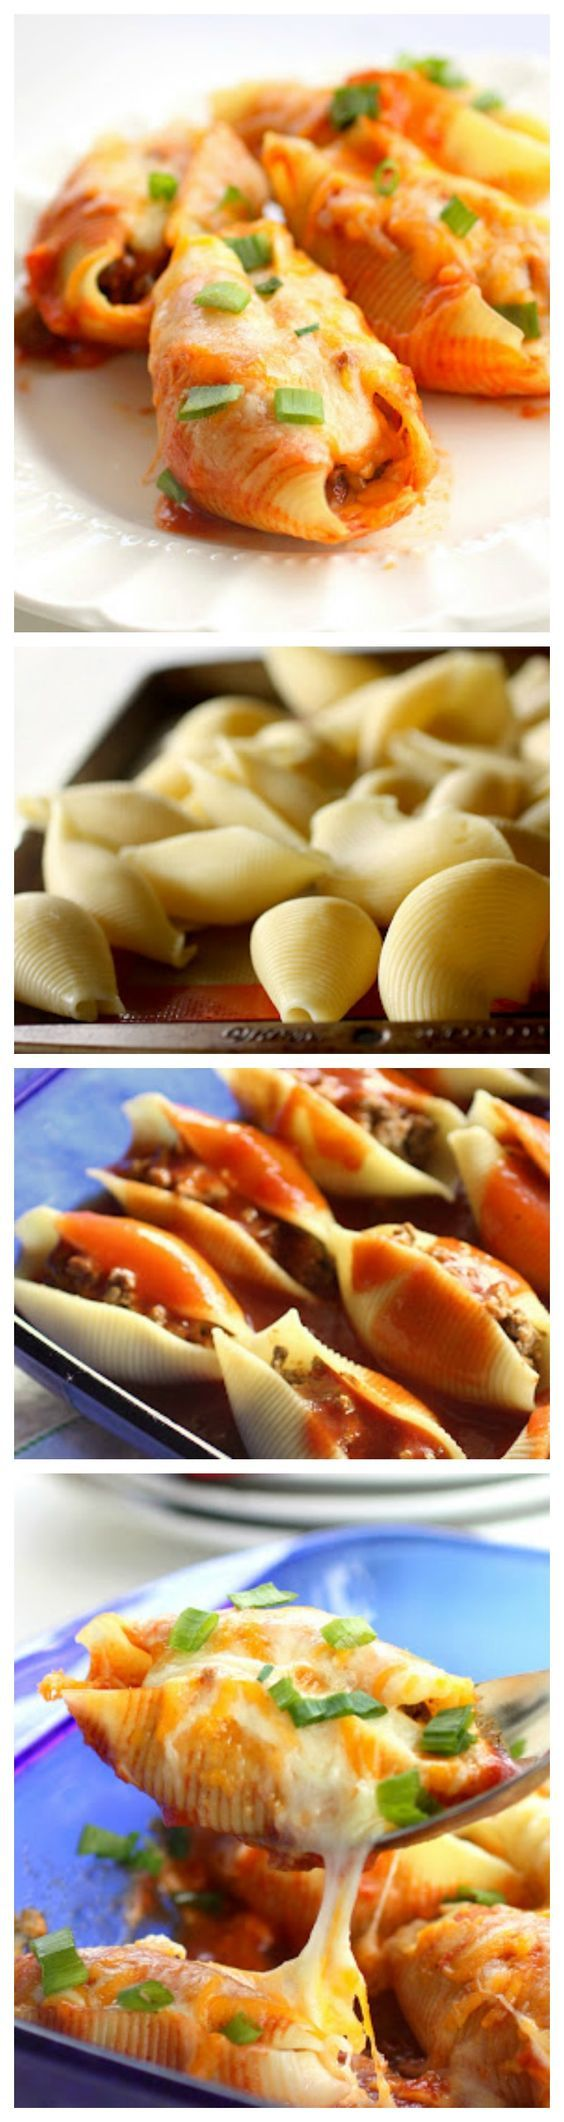 Mexican Stuffed Shells - Pasta Shells stuffed with taco meat and cheese. An easy…